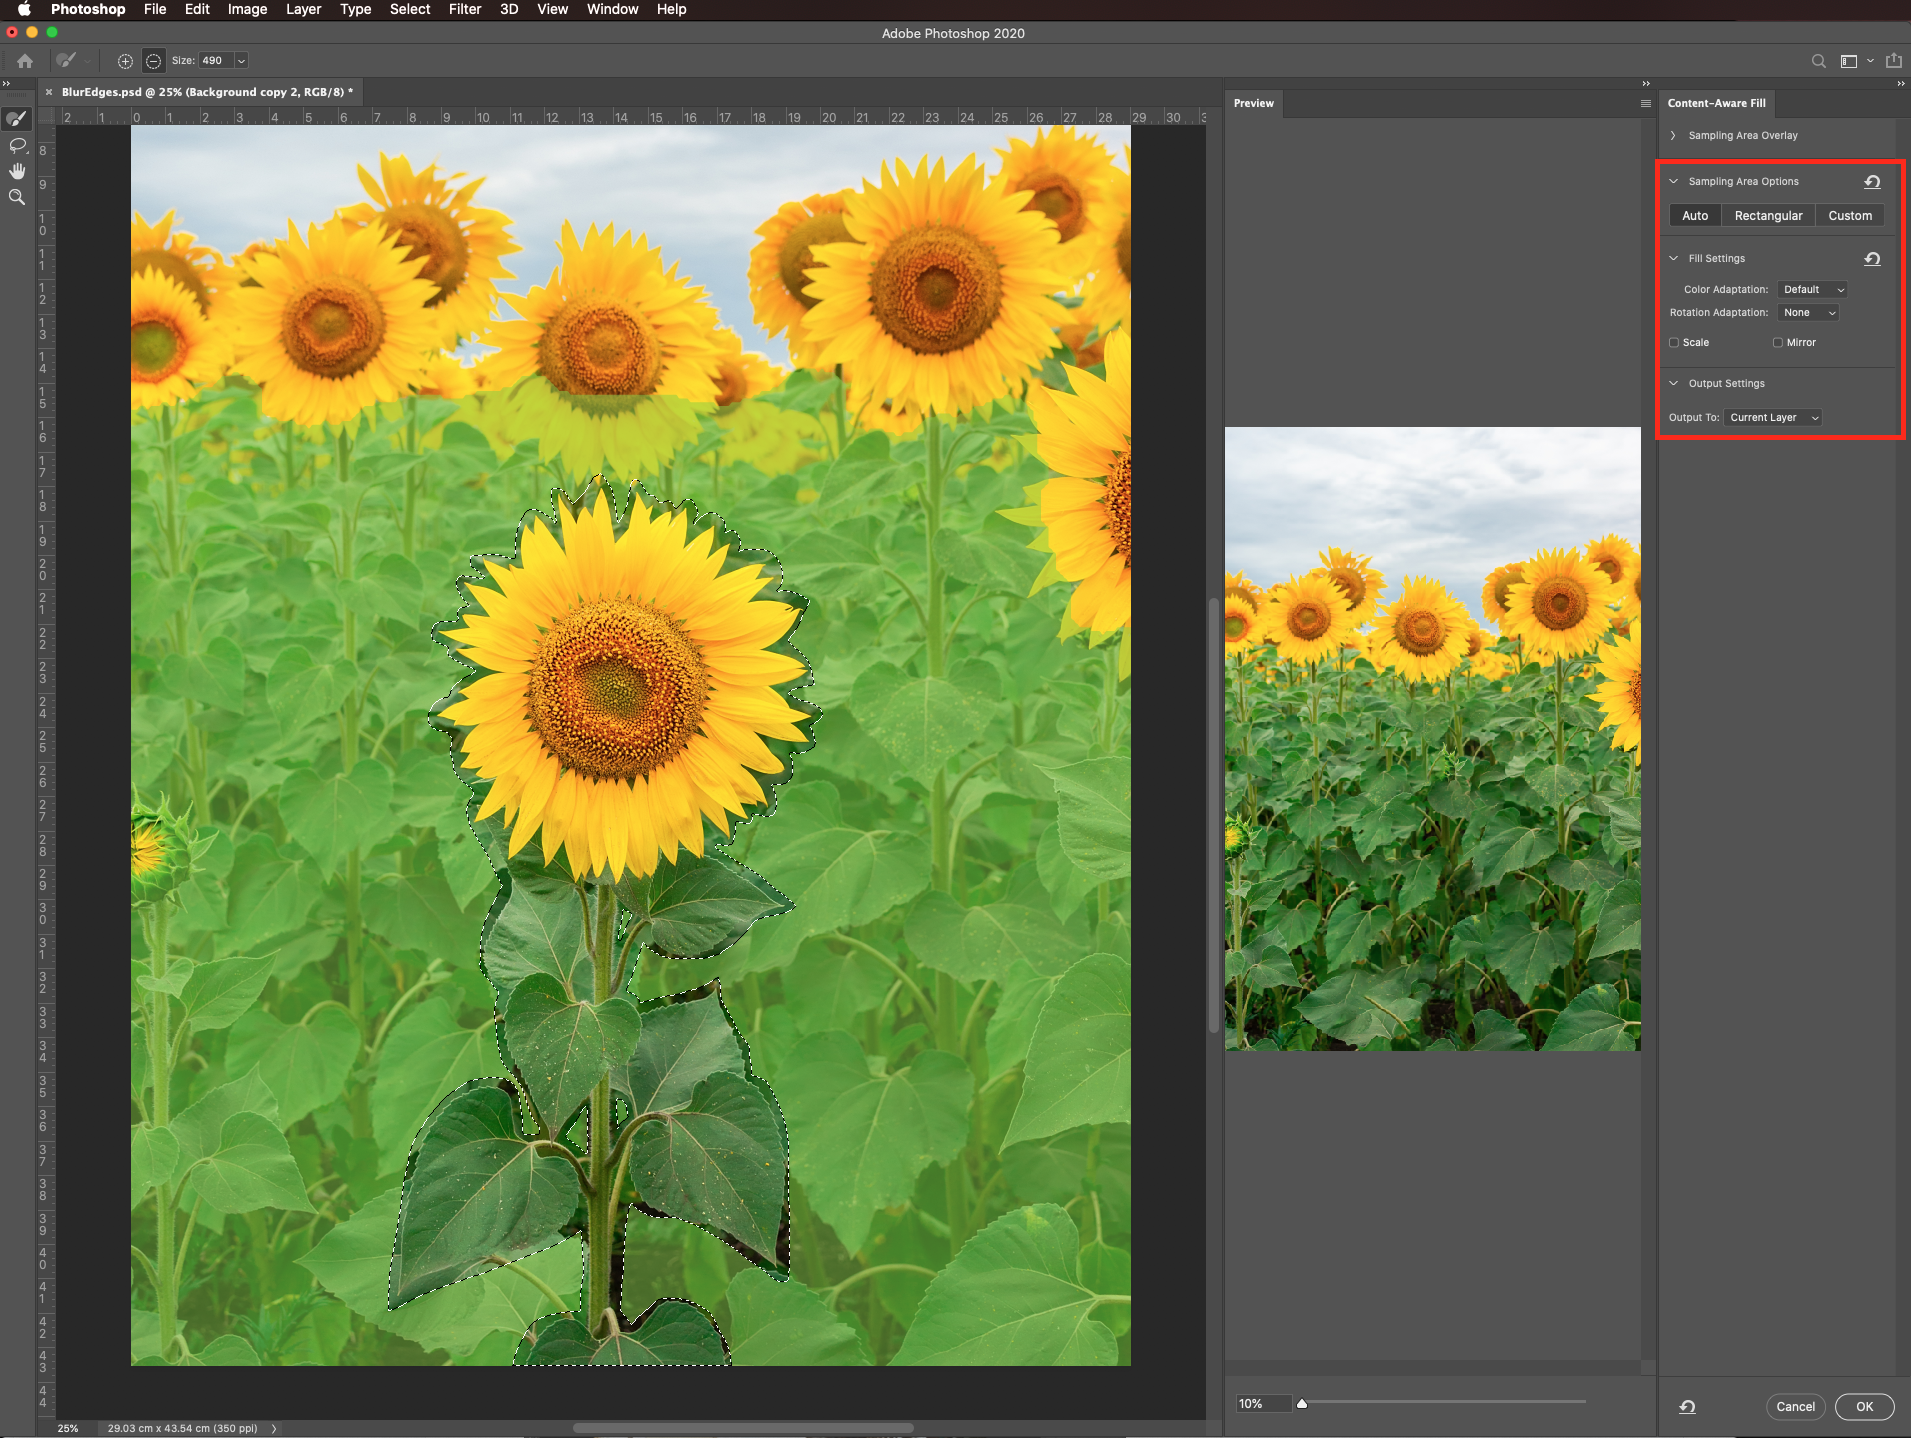 Output to current layer in Photoshop